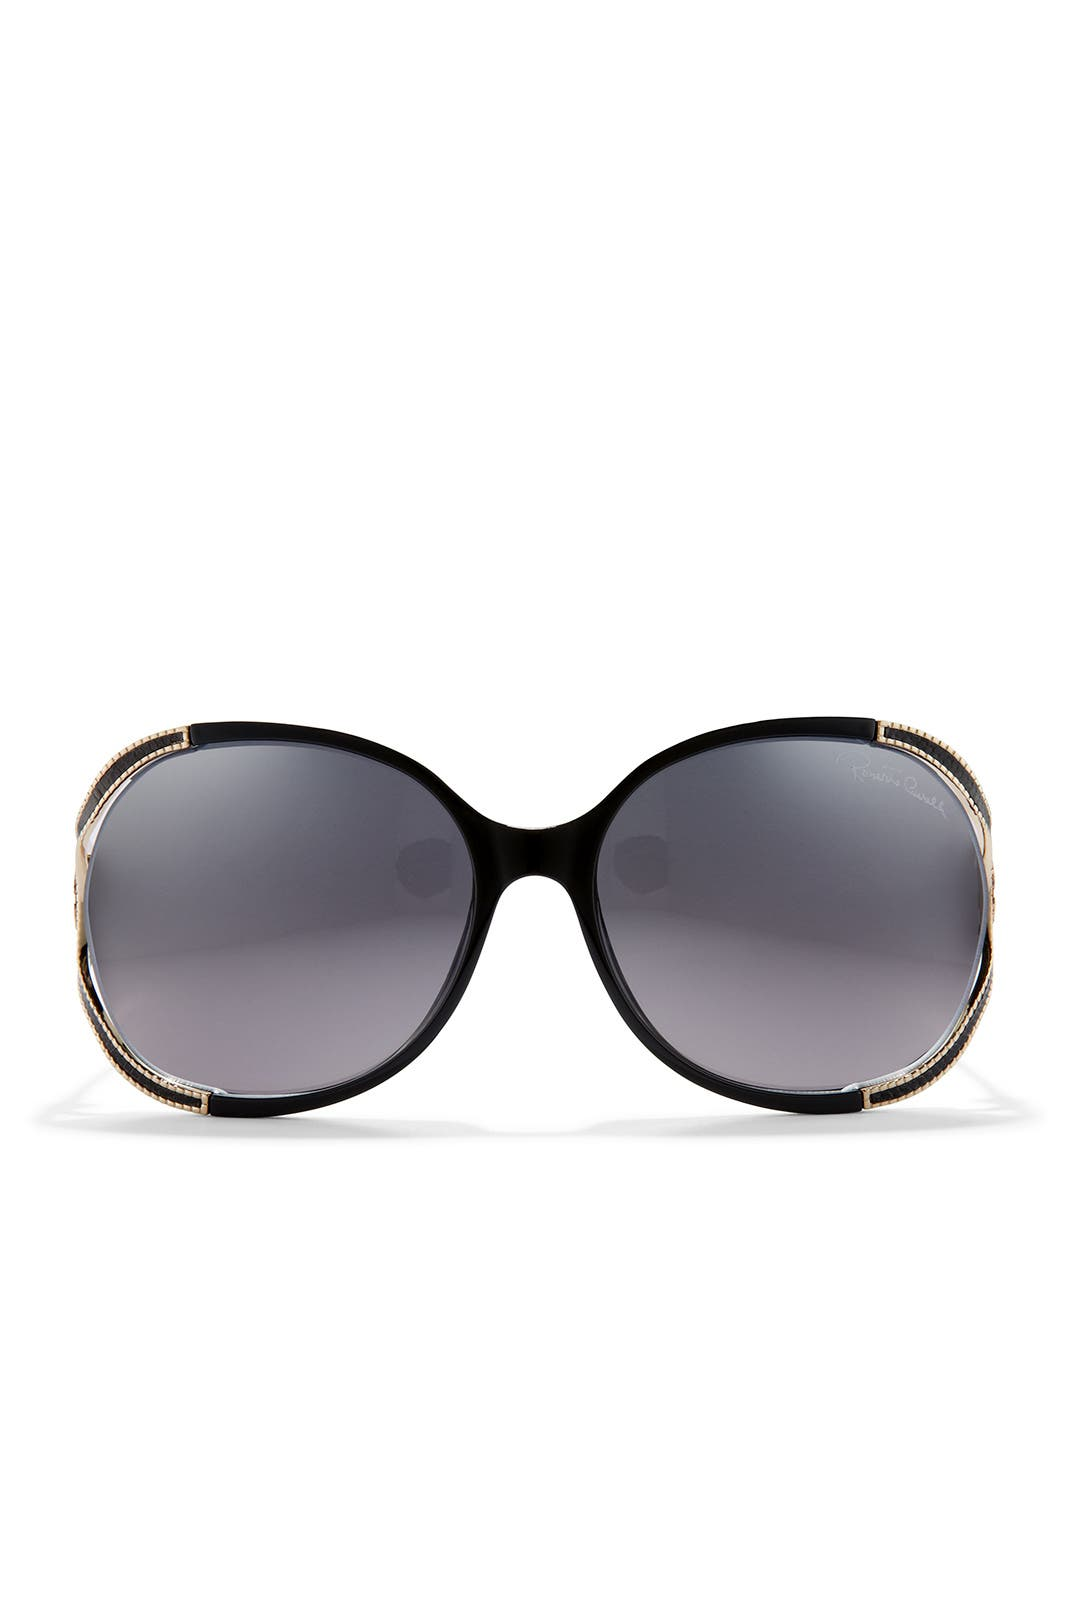 Melrose Sunglasses by Roberto Cavalli Accessories